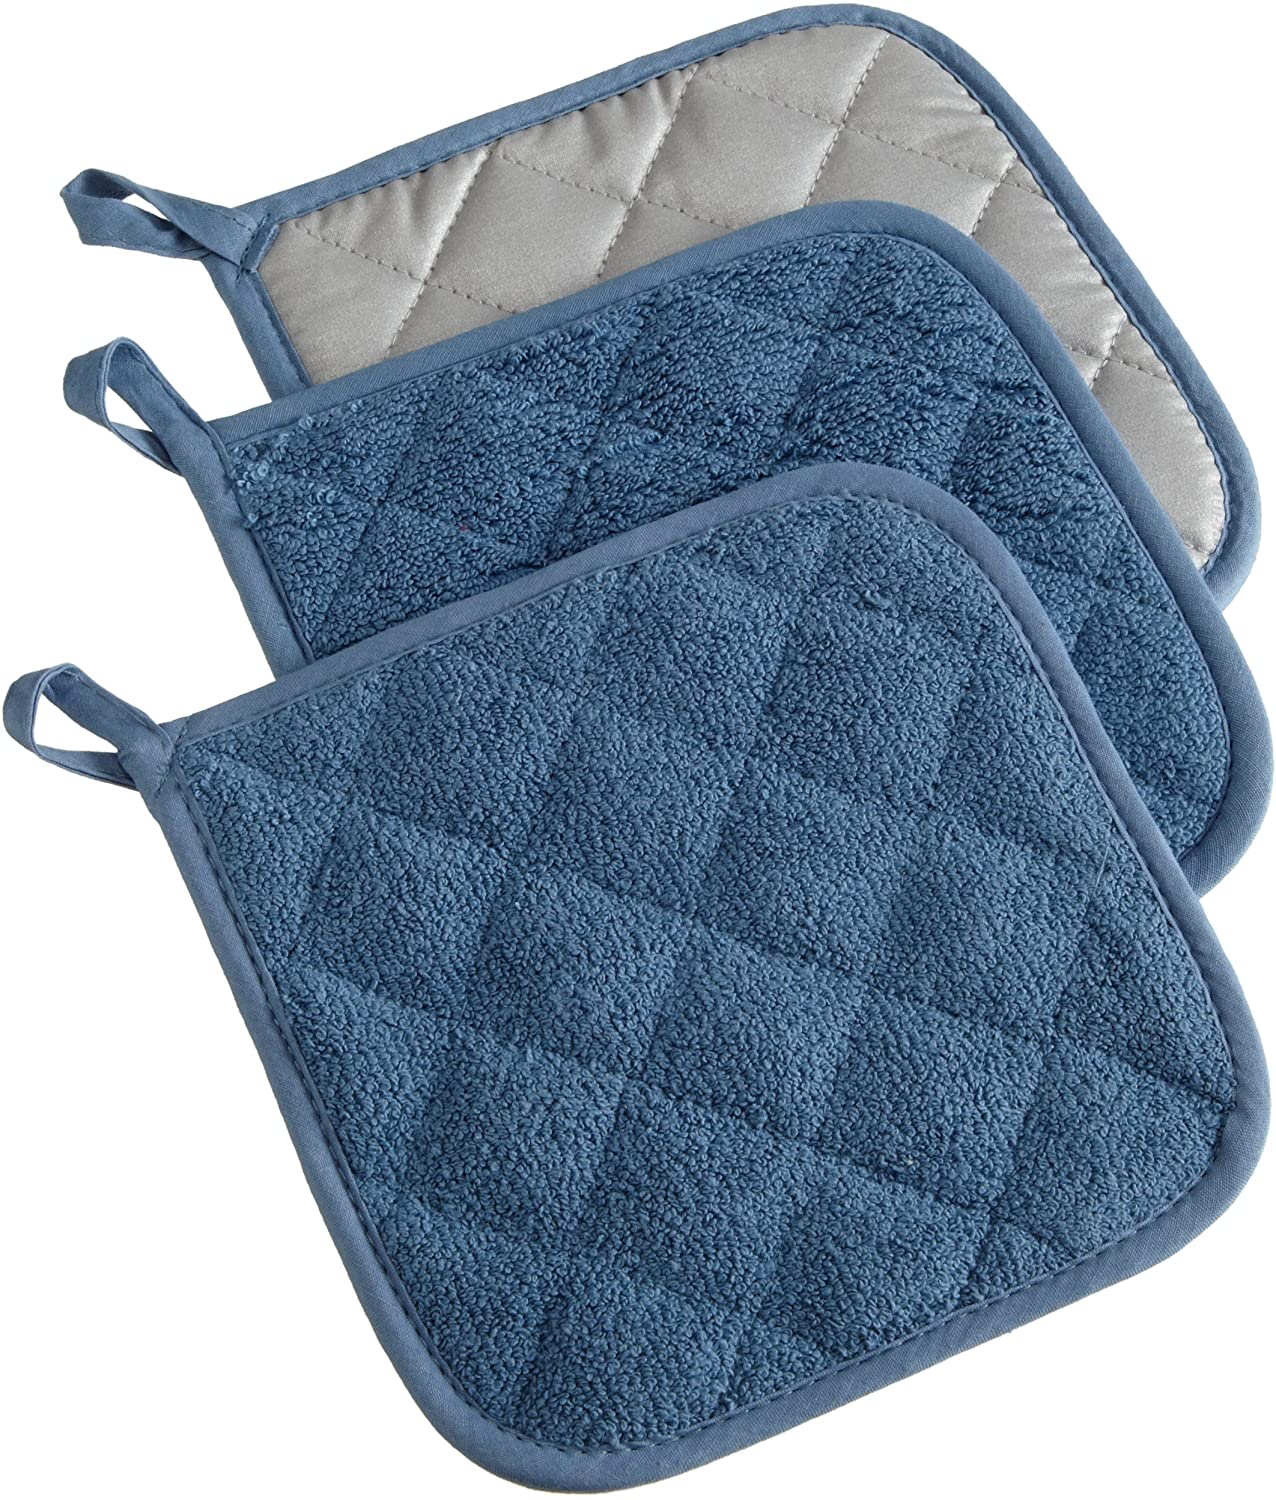 DII 100% Cotton, Quilted Terry Oven Set Machine Washable, Heat Resistant with Hanging Loop, Potholder, Blue 3 Piece: Home & Kitchen